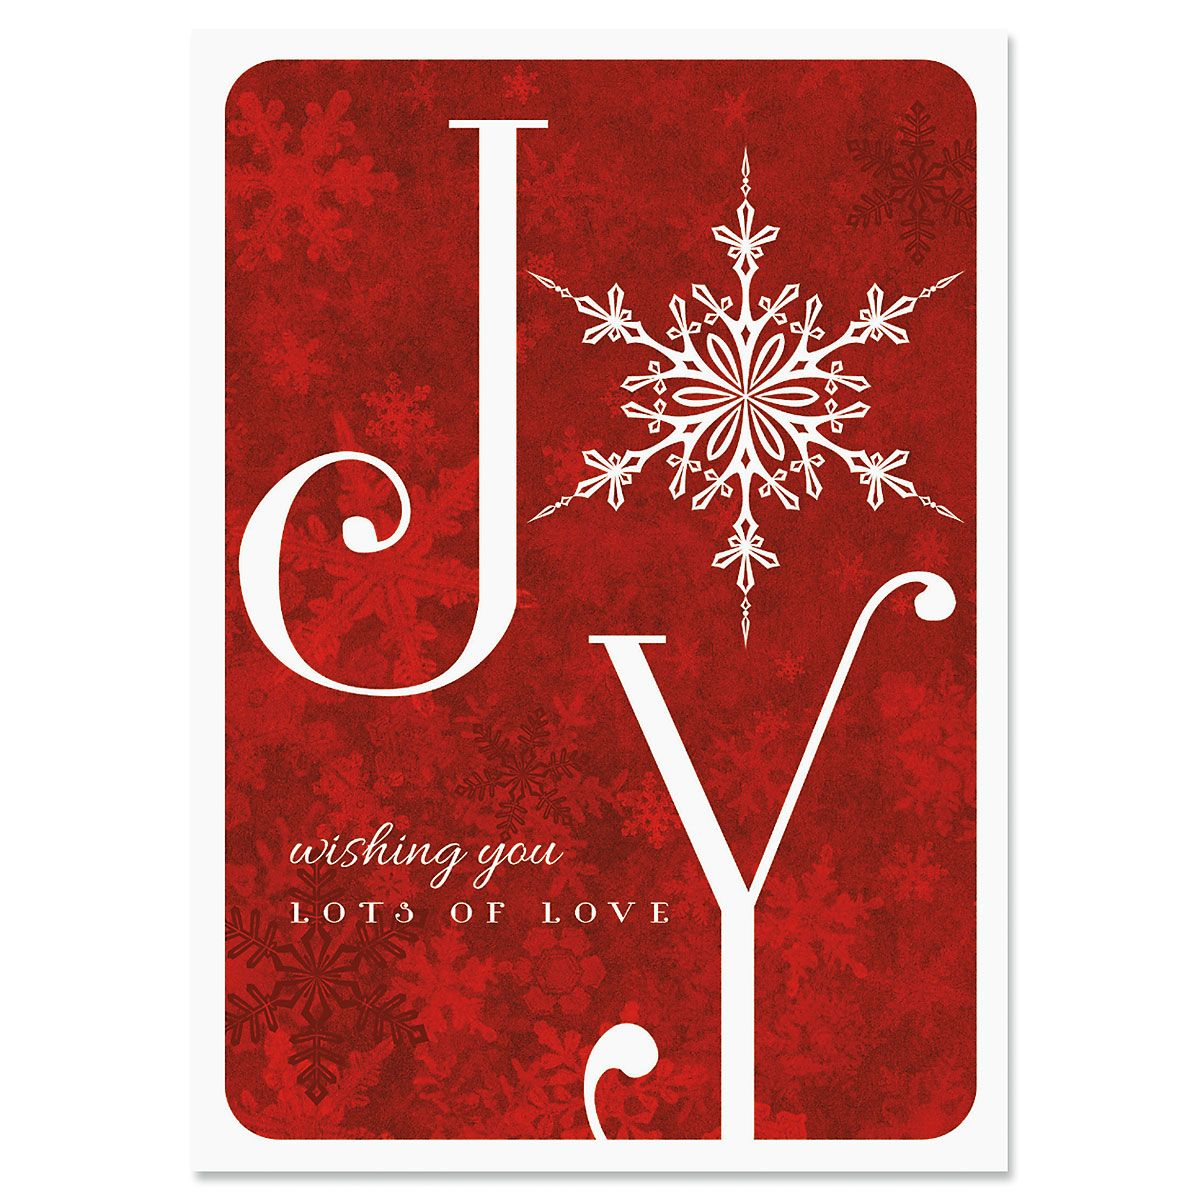 Joyful Greetings Christmas Cards